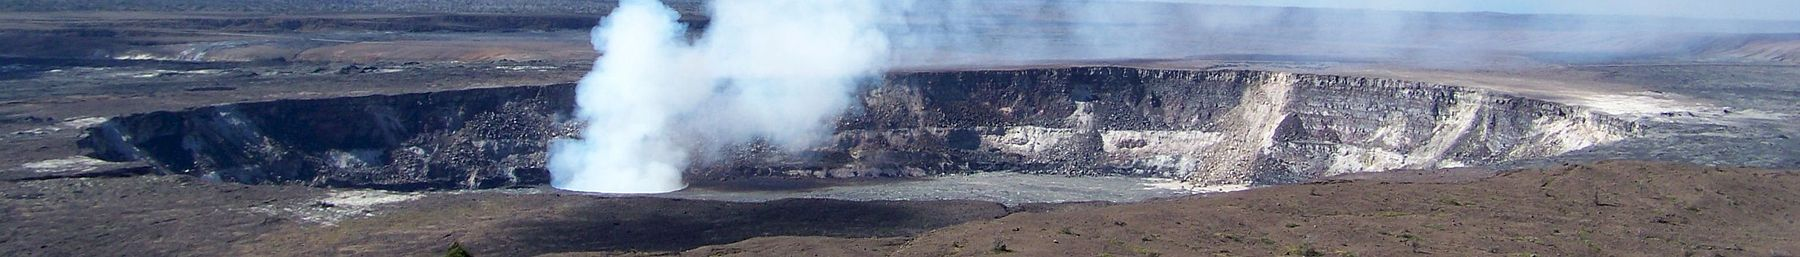 Halema'uma'u Crater at summit of Kilauea